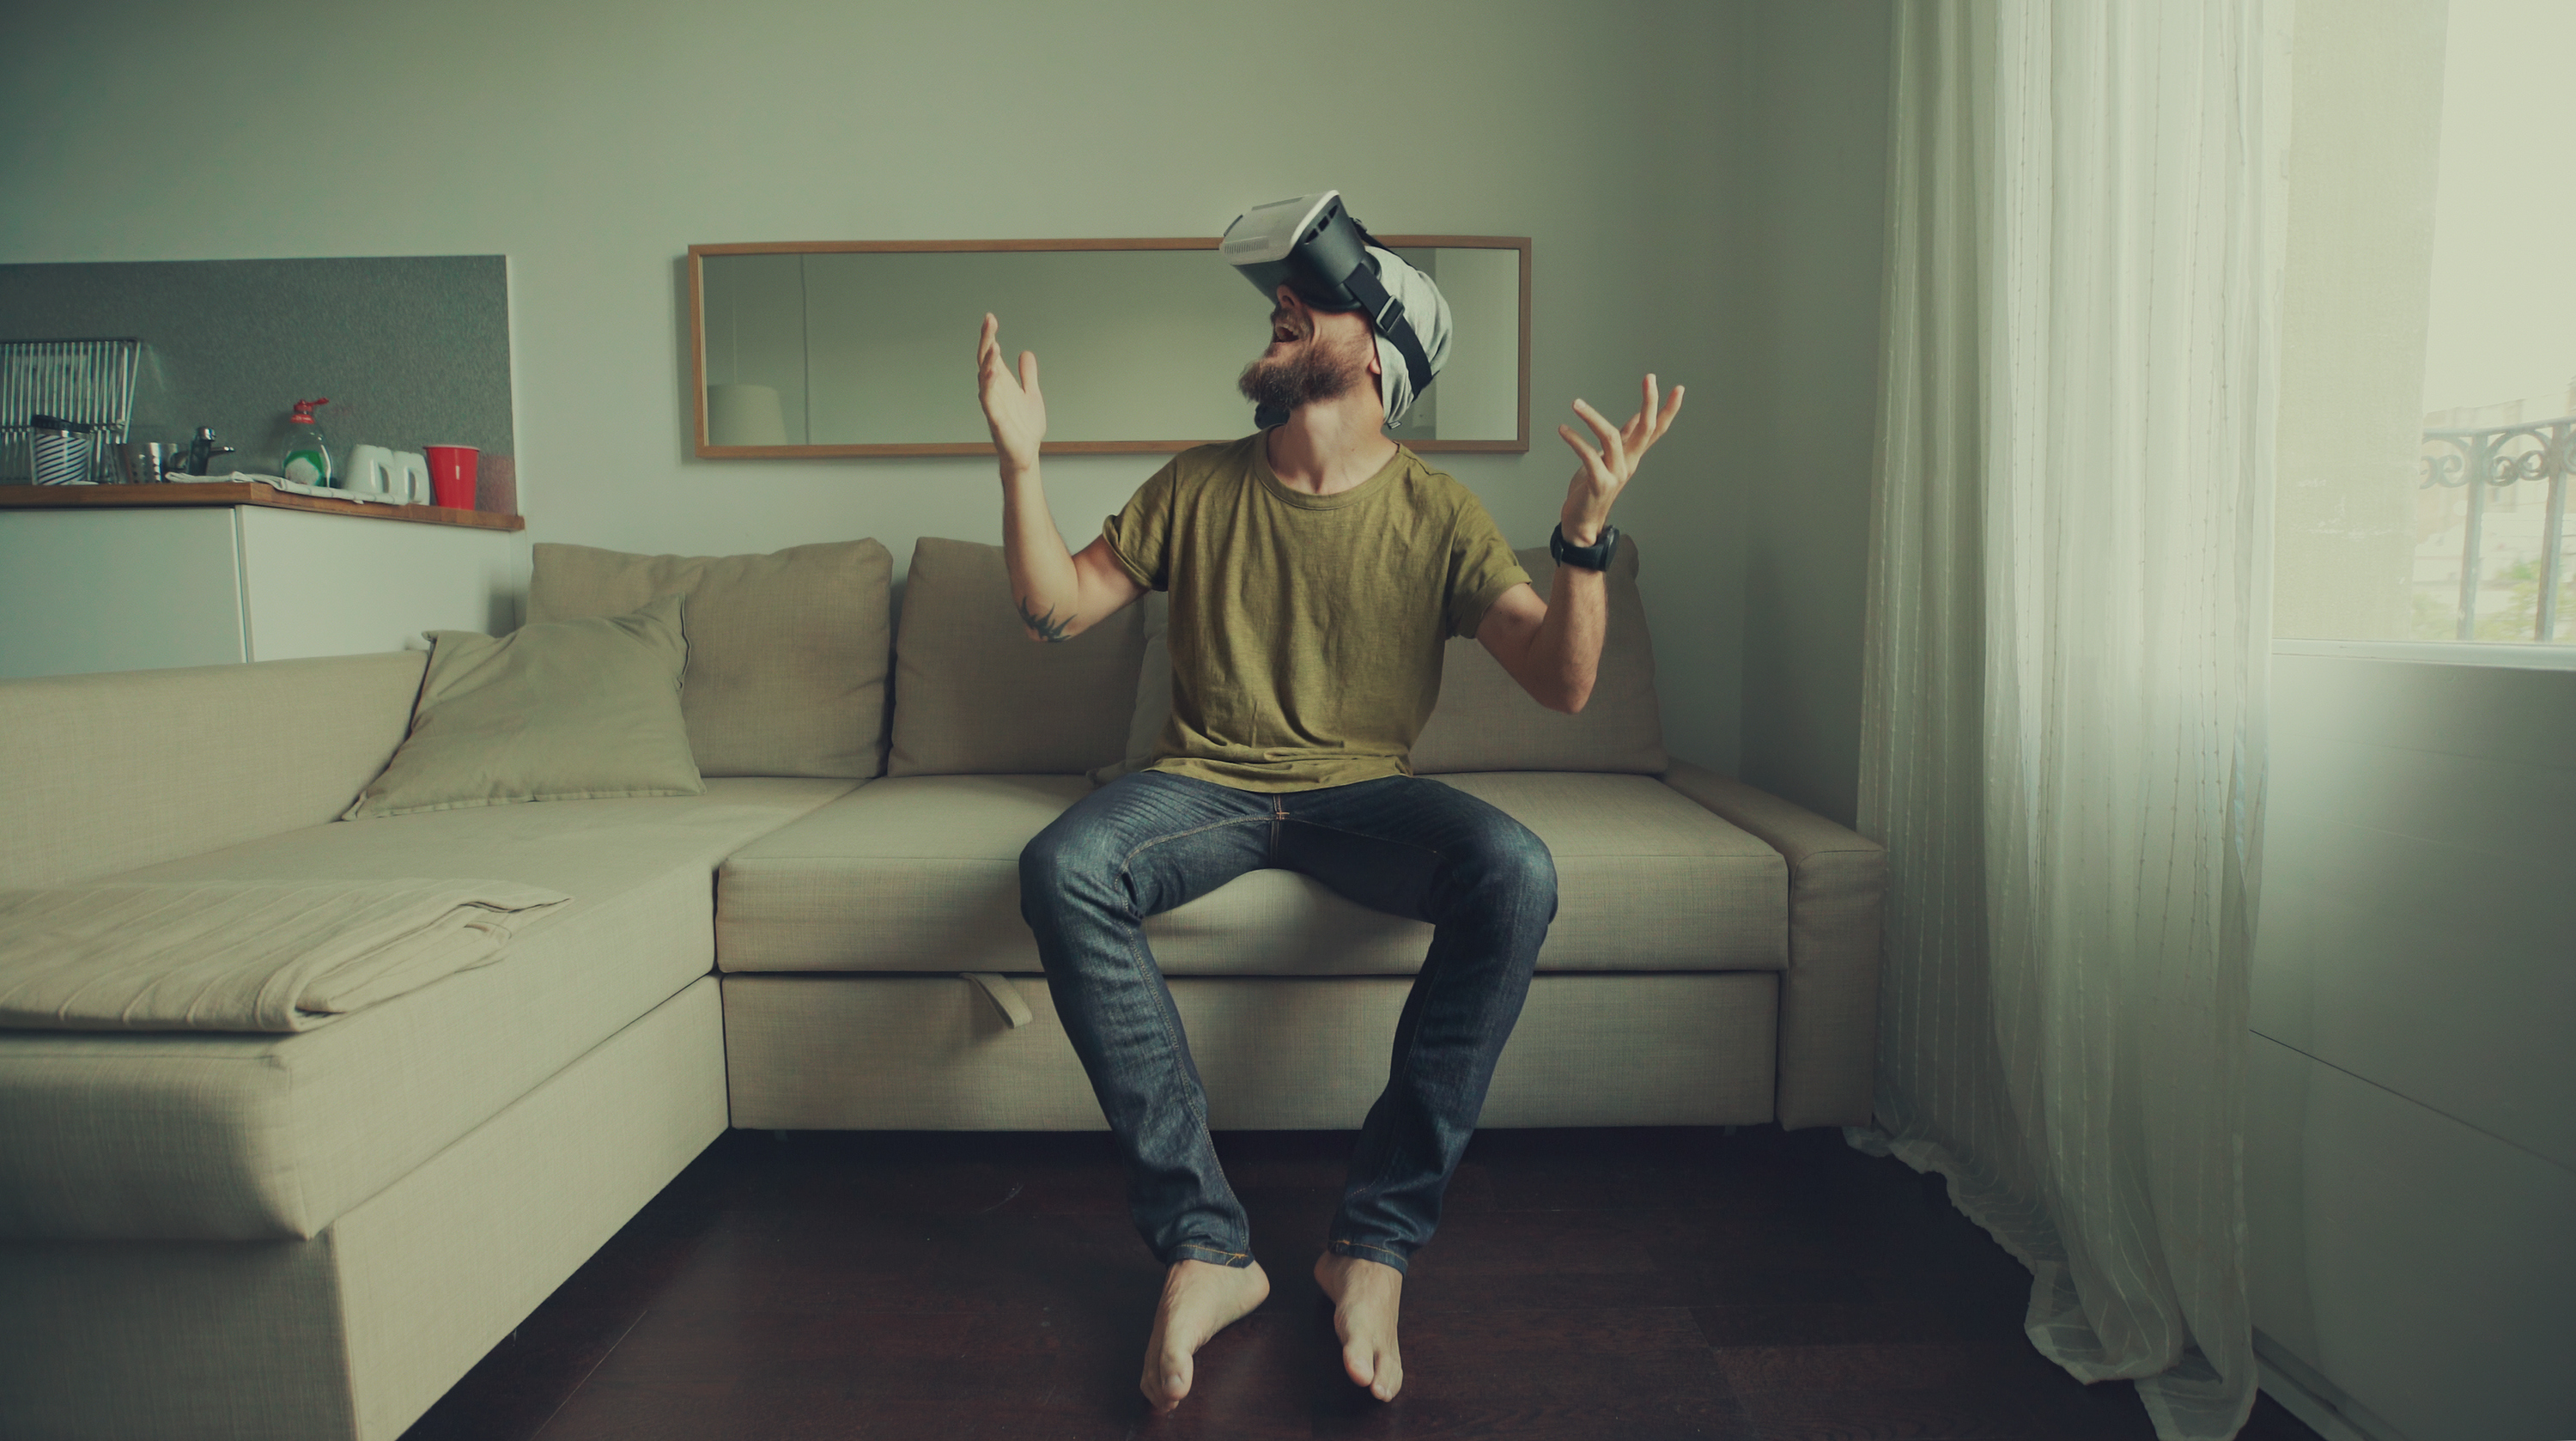 iStock-612843836%20-%20Man%20wearing%20virtual%20reality%20headset%20at%20home.jpg